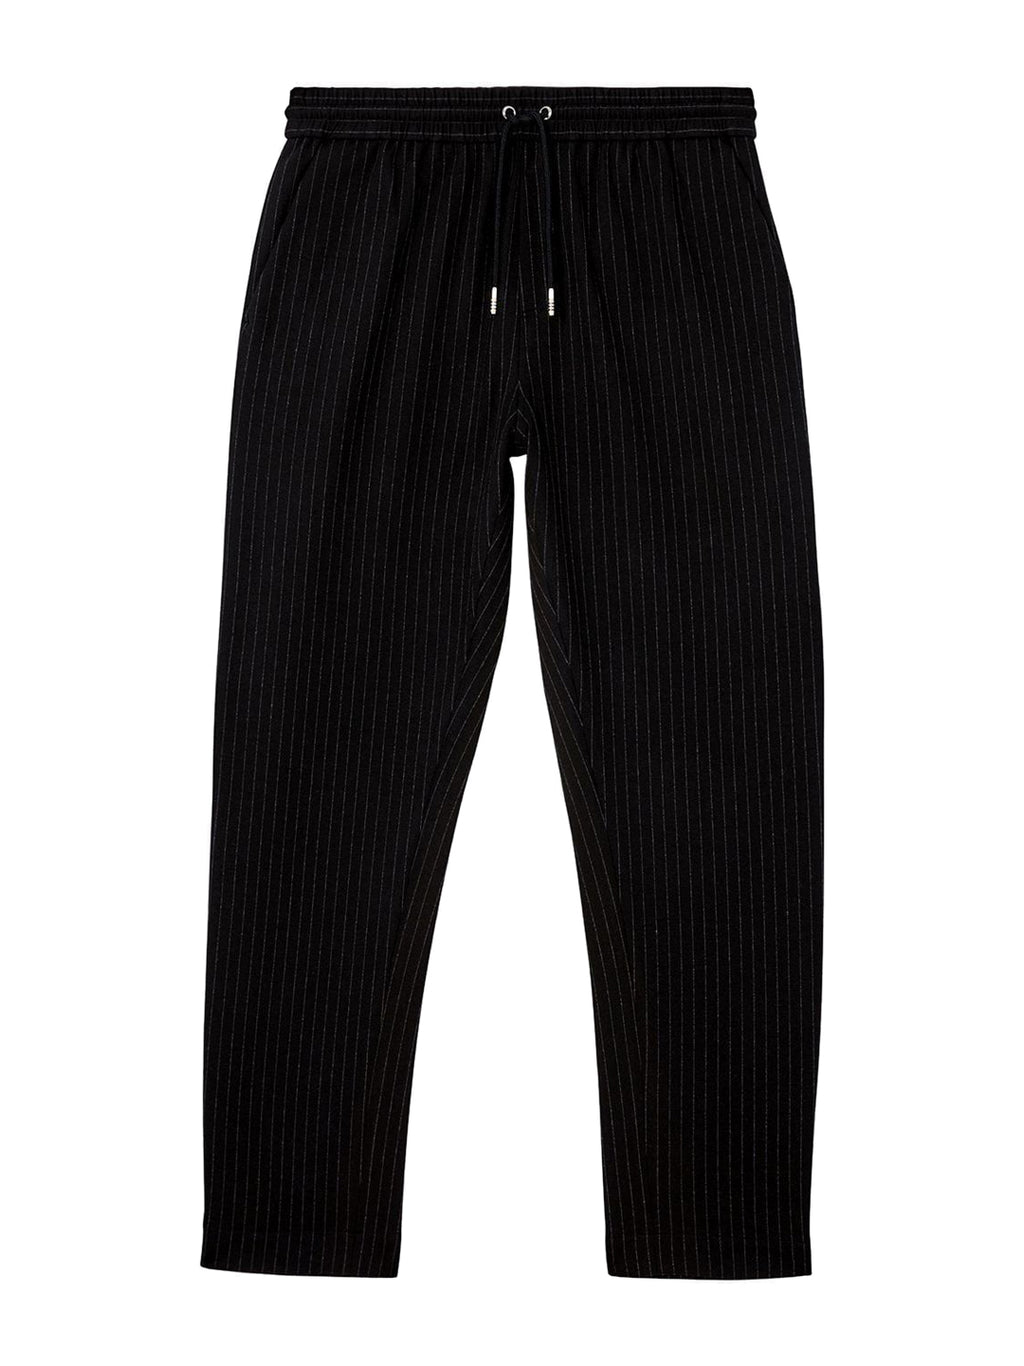 Black and White Pinstripe Track Pants